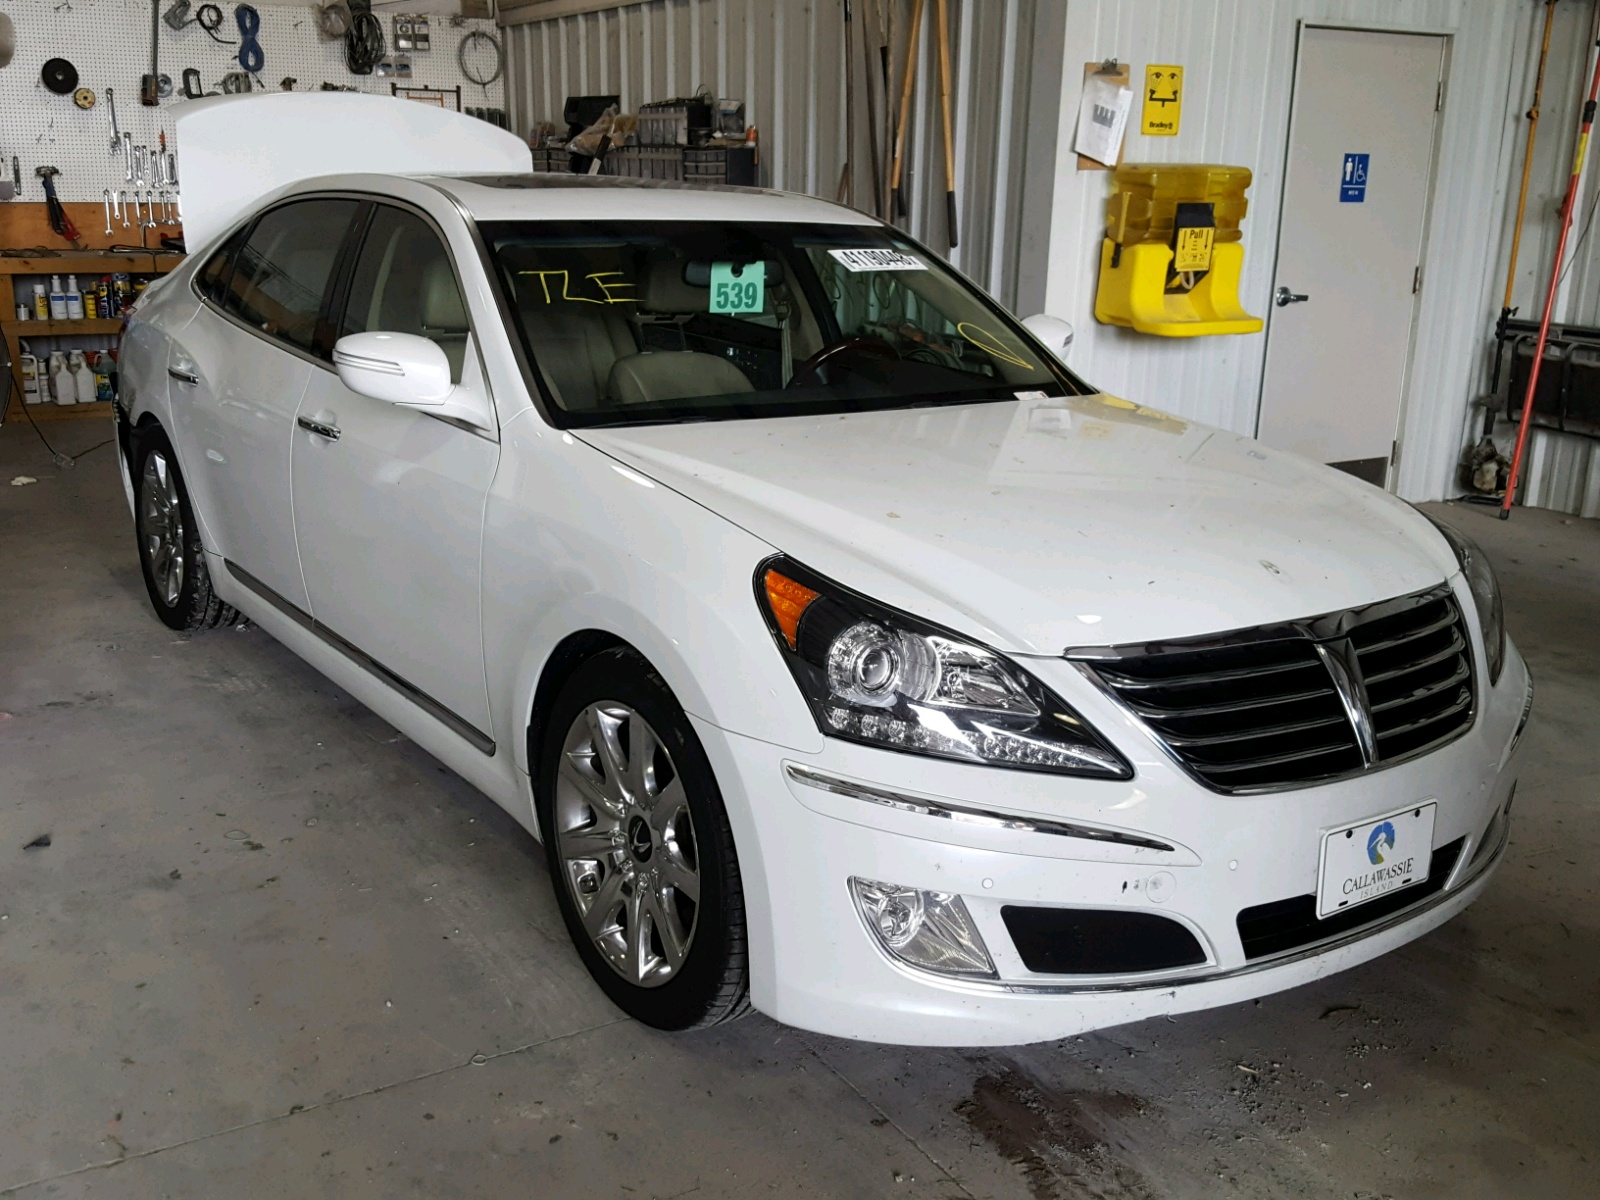 Salvage 2013 Hyundai EQUUS SIGN for sale